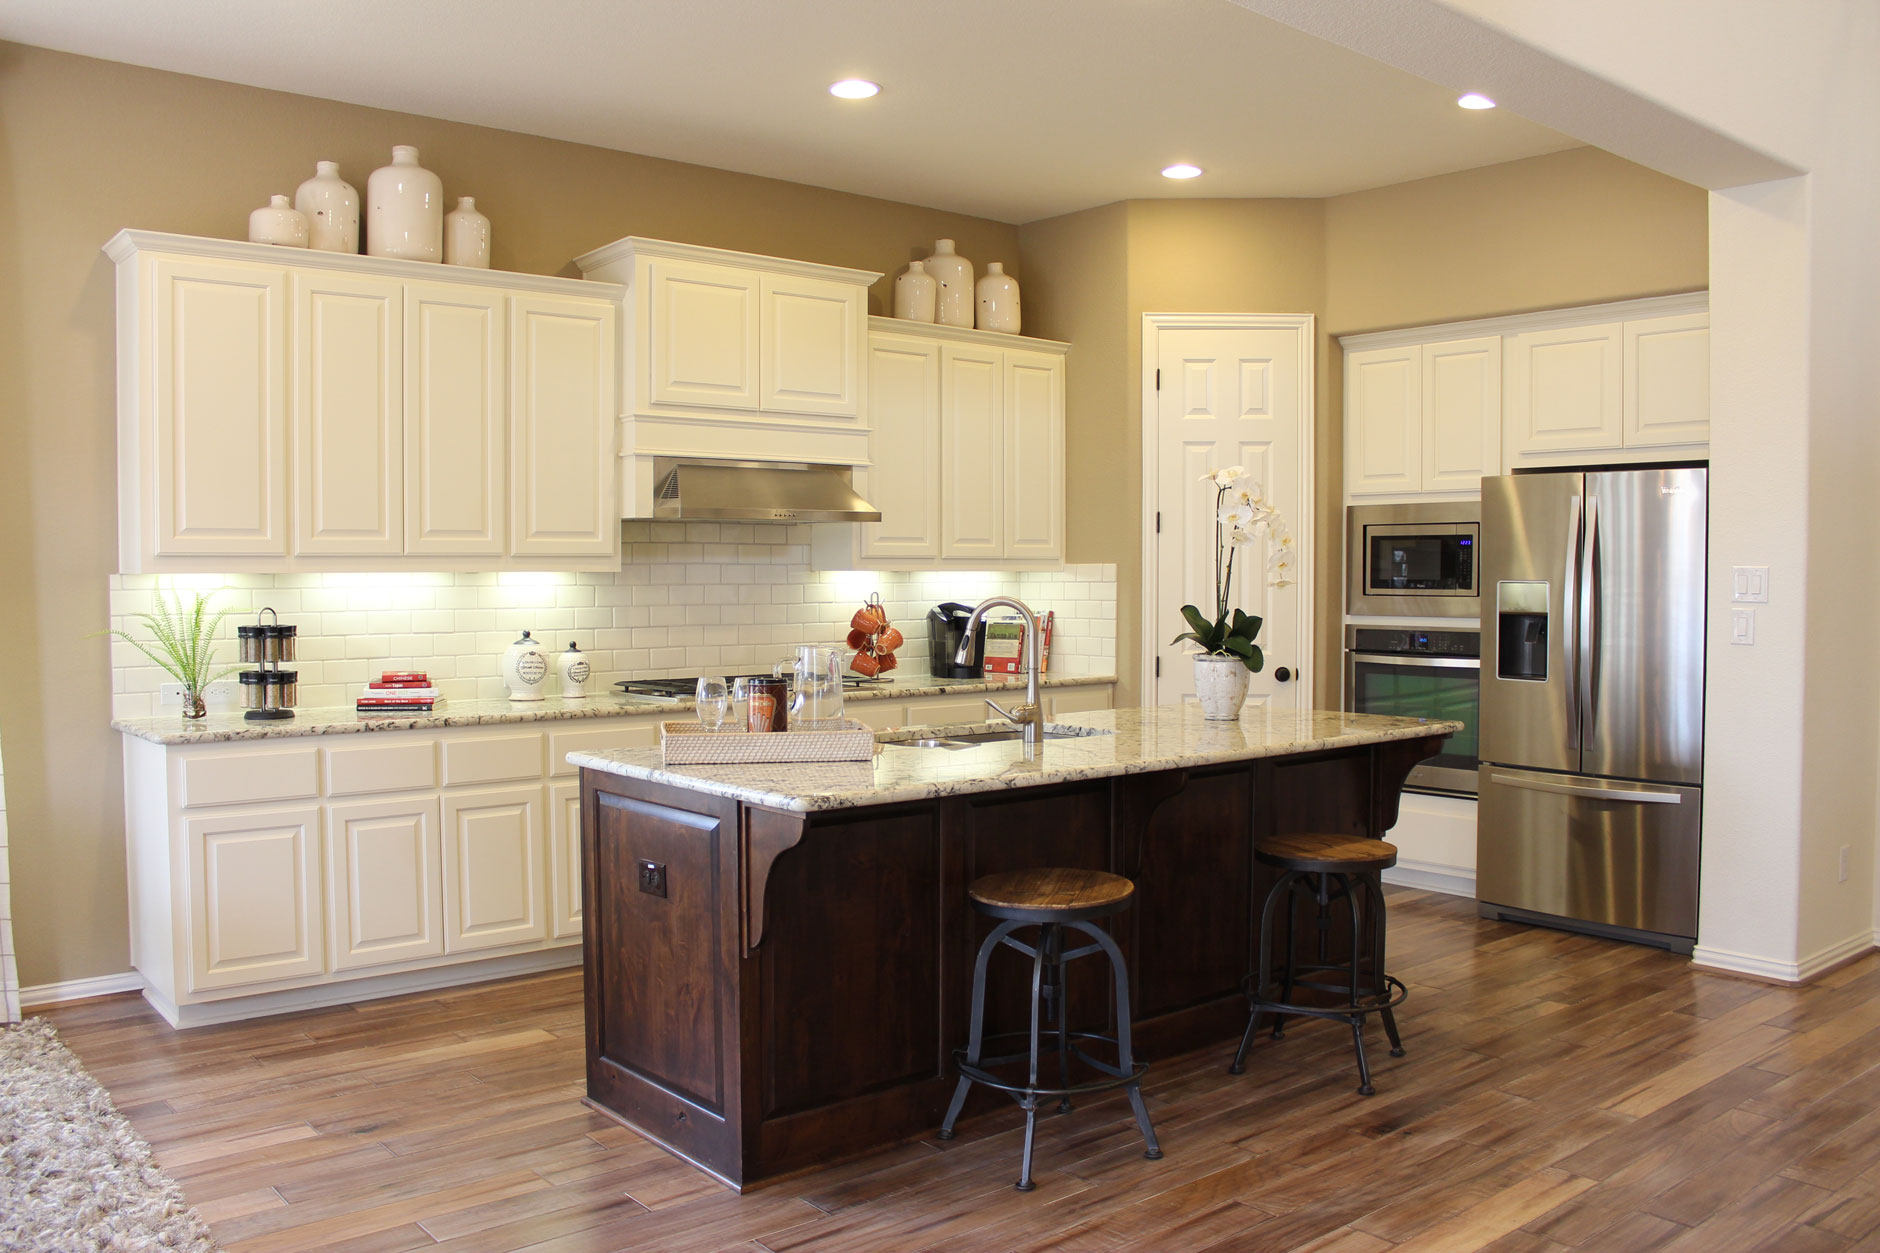 Five Kitchen And Bath Trend Predictions For 2015 Taylorcraft Cabinet Door Company